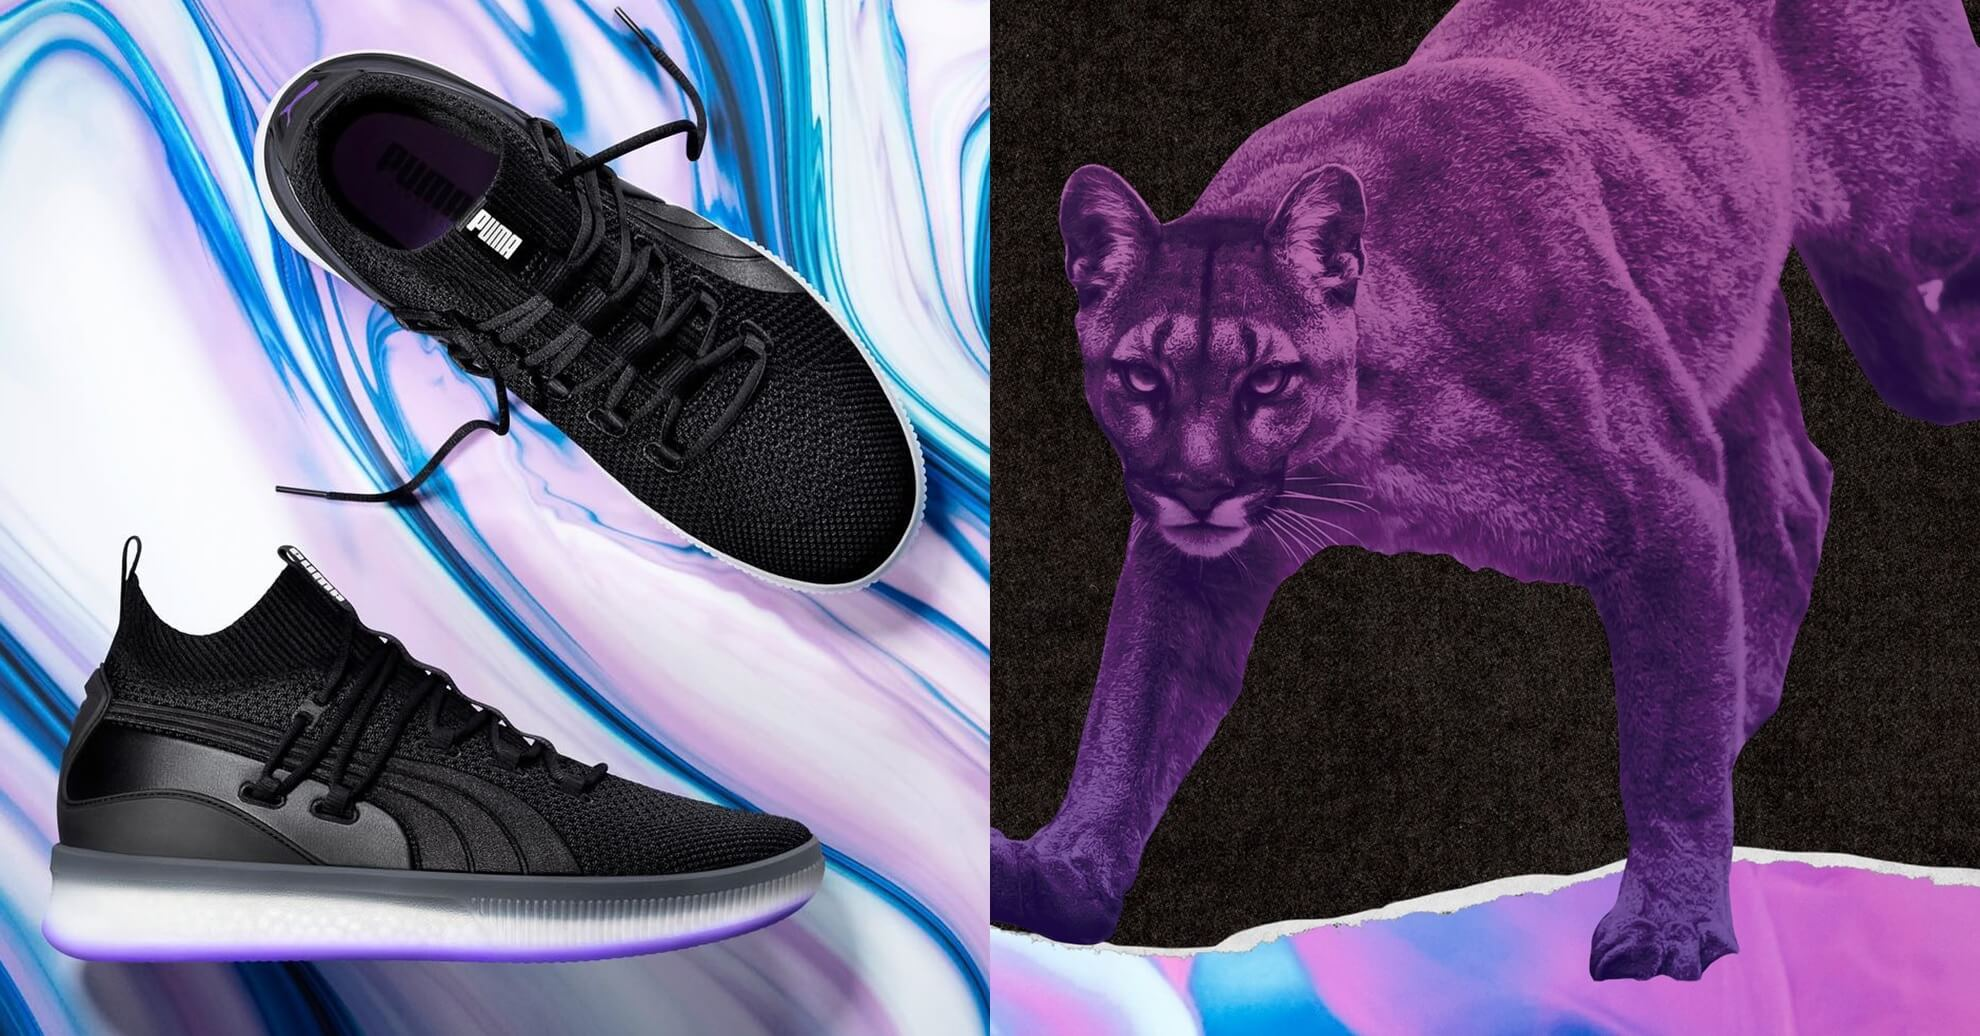 BUY NOW - Puma Court Clyde Disrupt